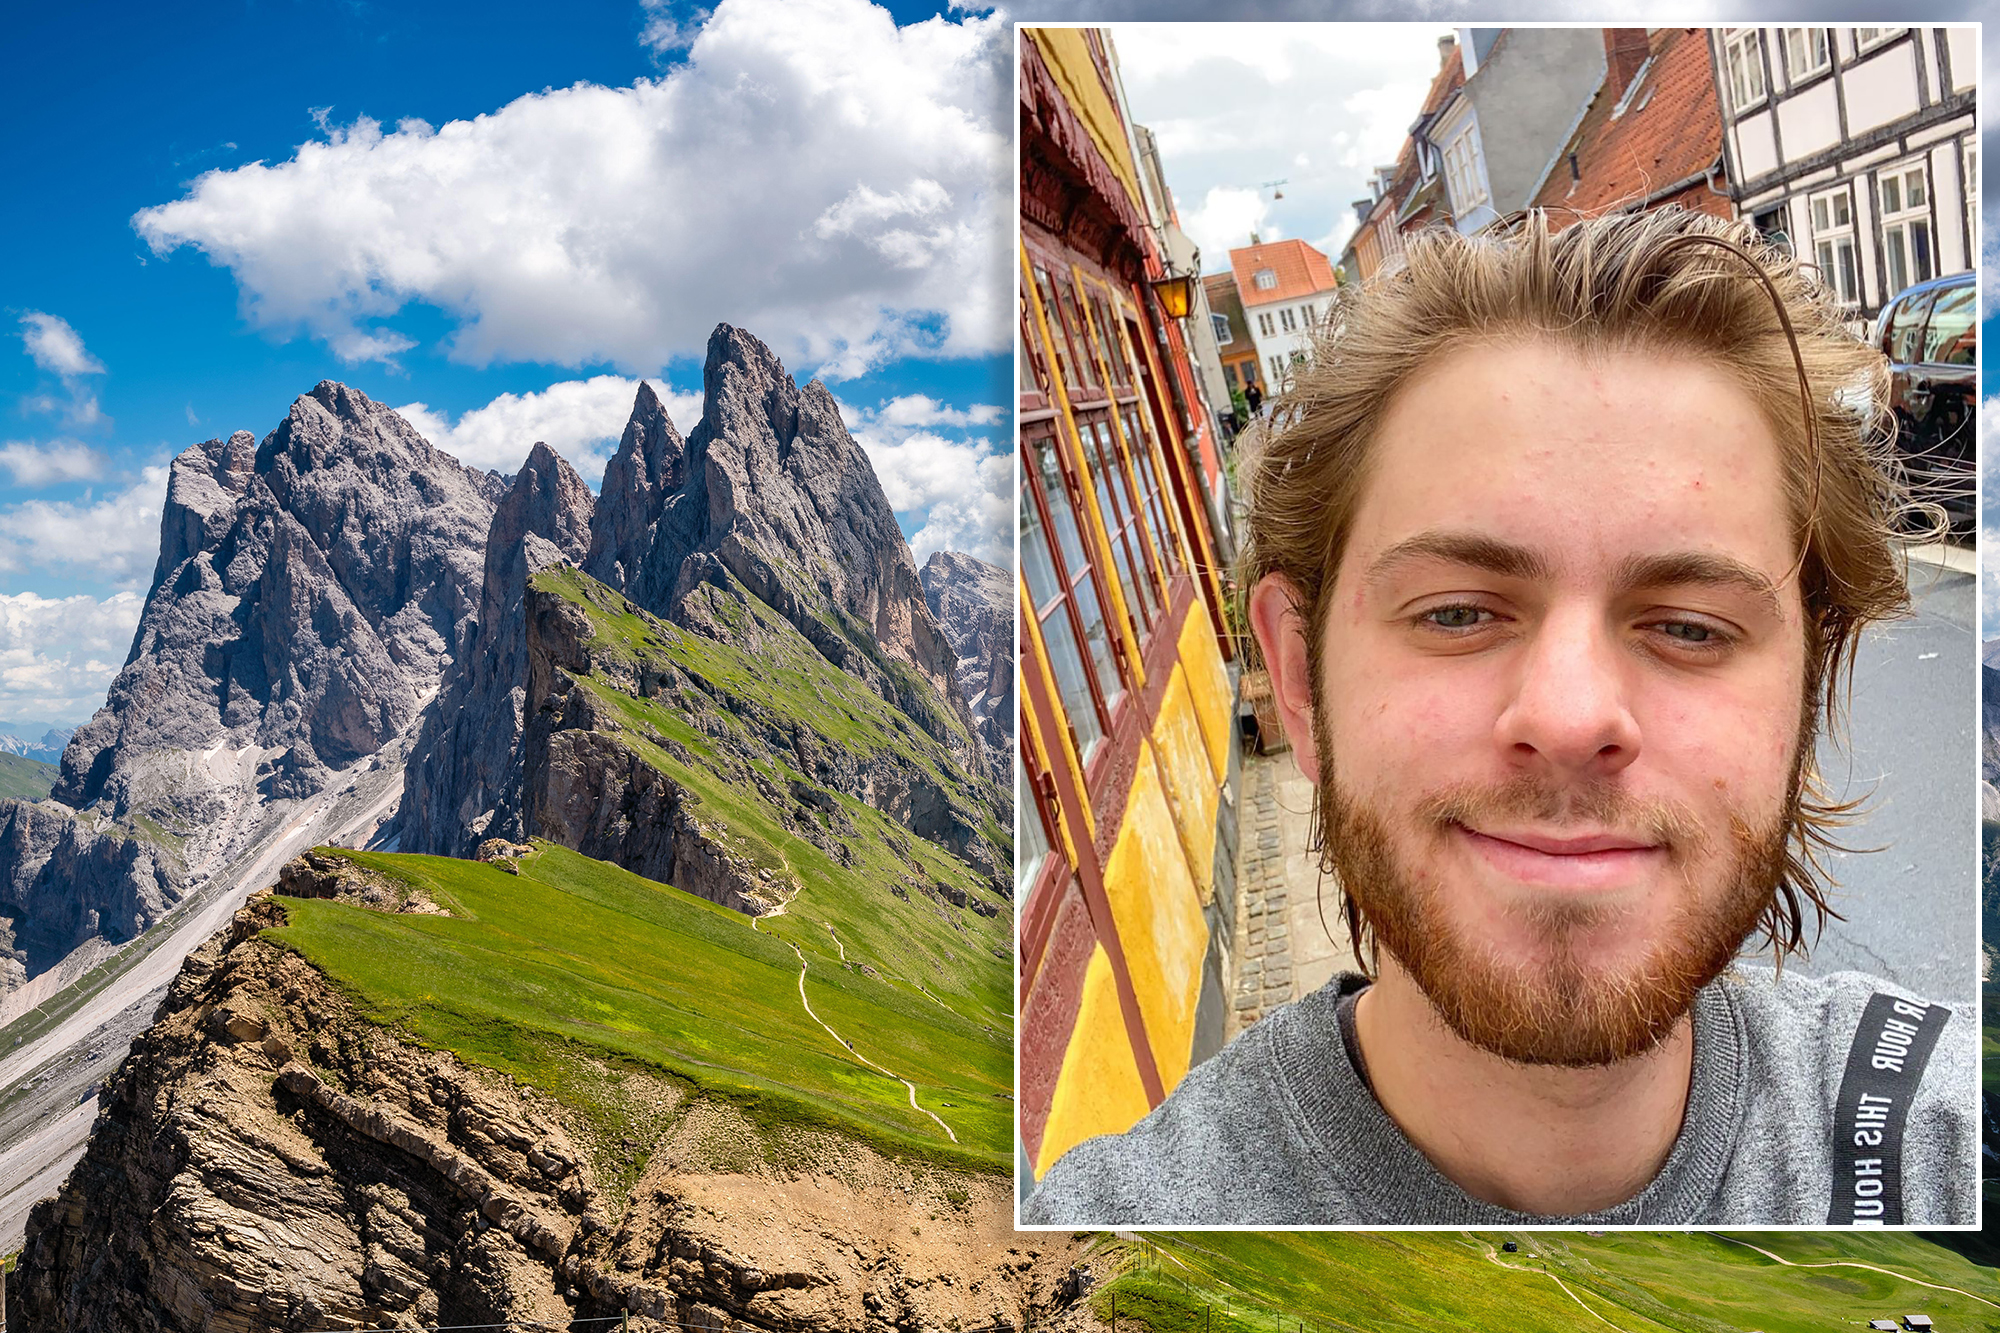 22-Year-Old YouTuber Albert Dyrlund Dies After Falling Over 600 Feet from Italian Mountain While Filming Video